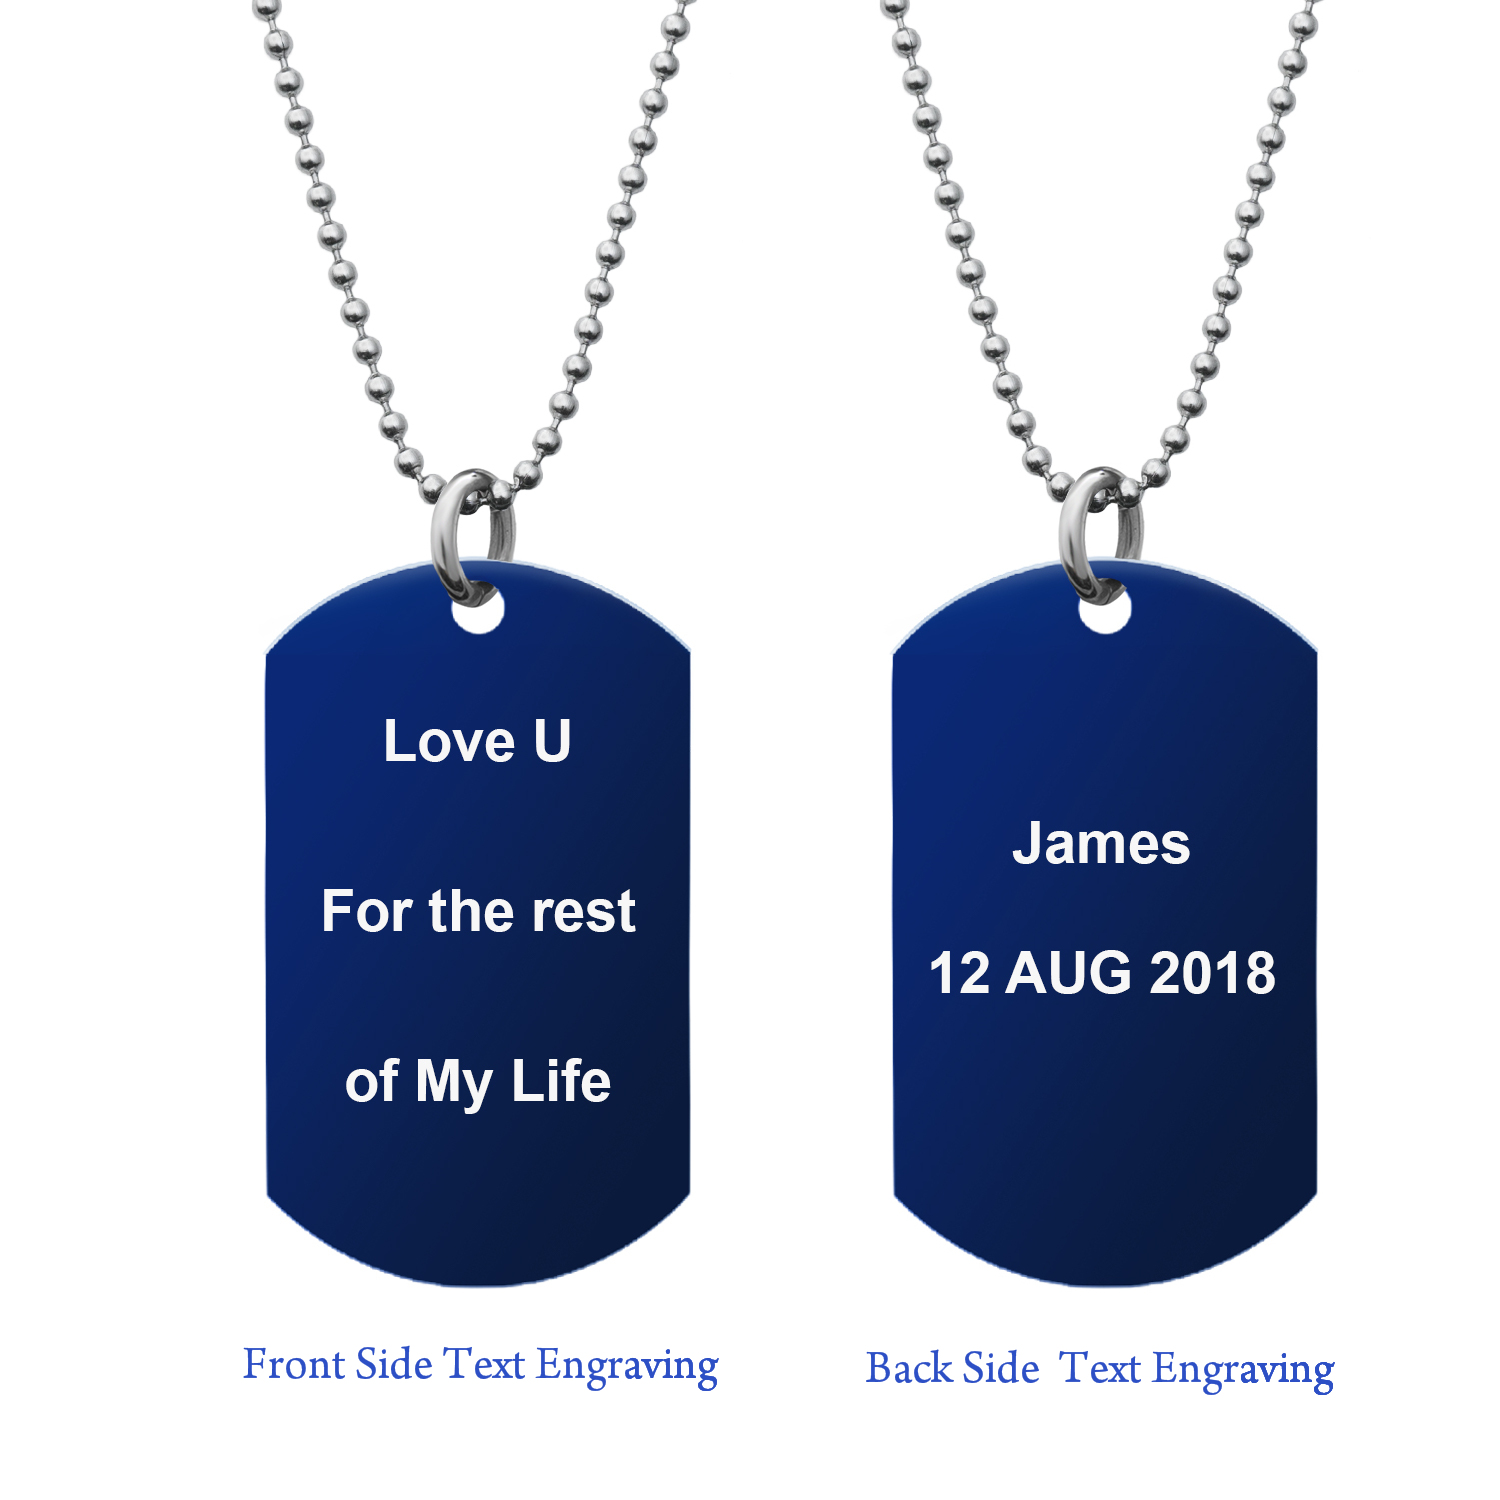 "Blue - Personalized Message Two Sides Text Engraved Stainless Steel Custom Dog Tag w/ Dot Ball Chain Necklace 24"" - Handmade"